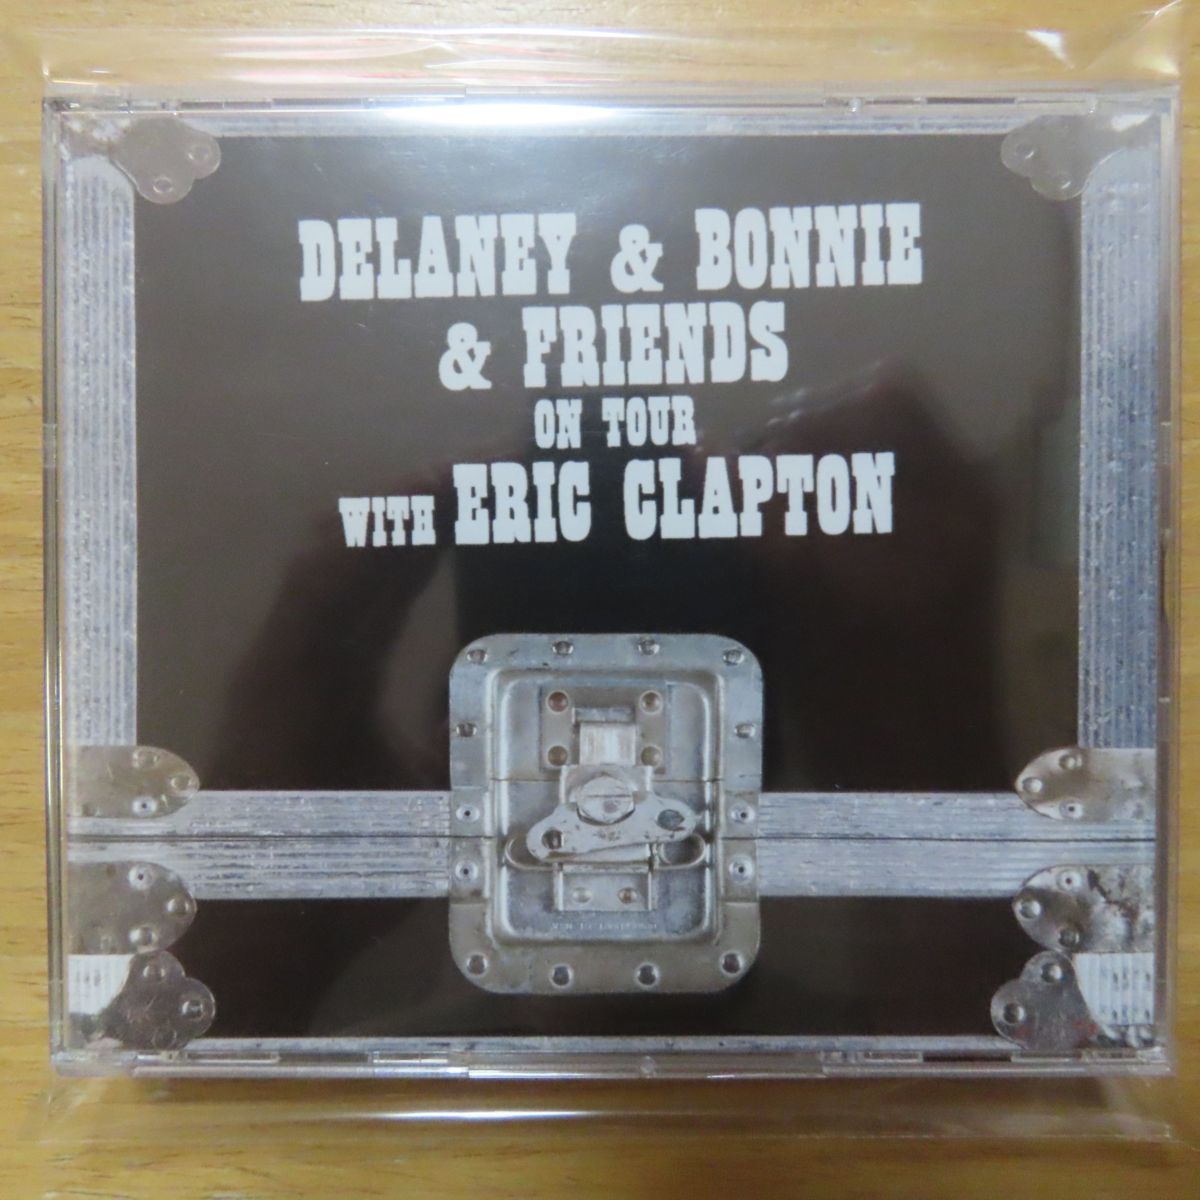 081227934460;【4CD】デラニー&ボニー / DELANEY & BONNIEwithERIC CLAPTON